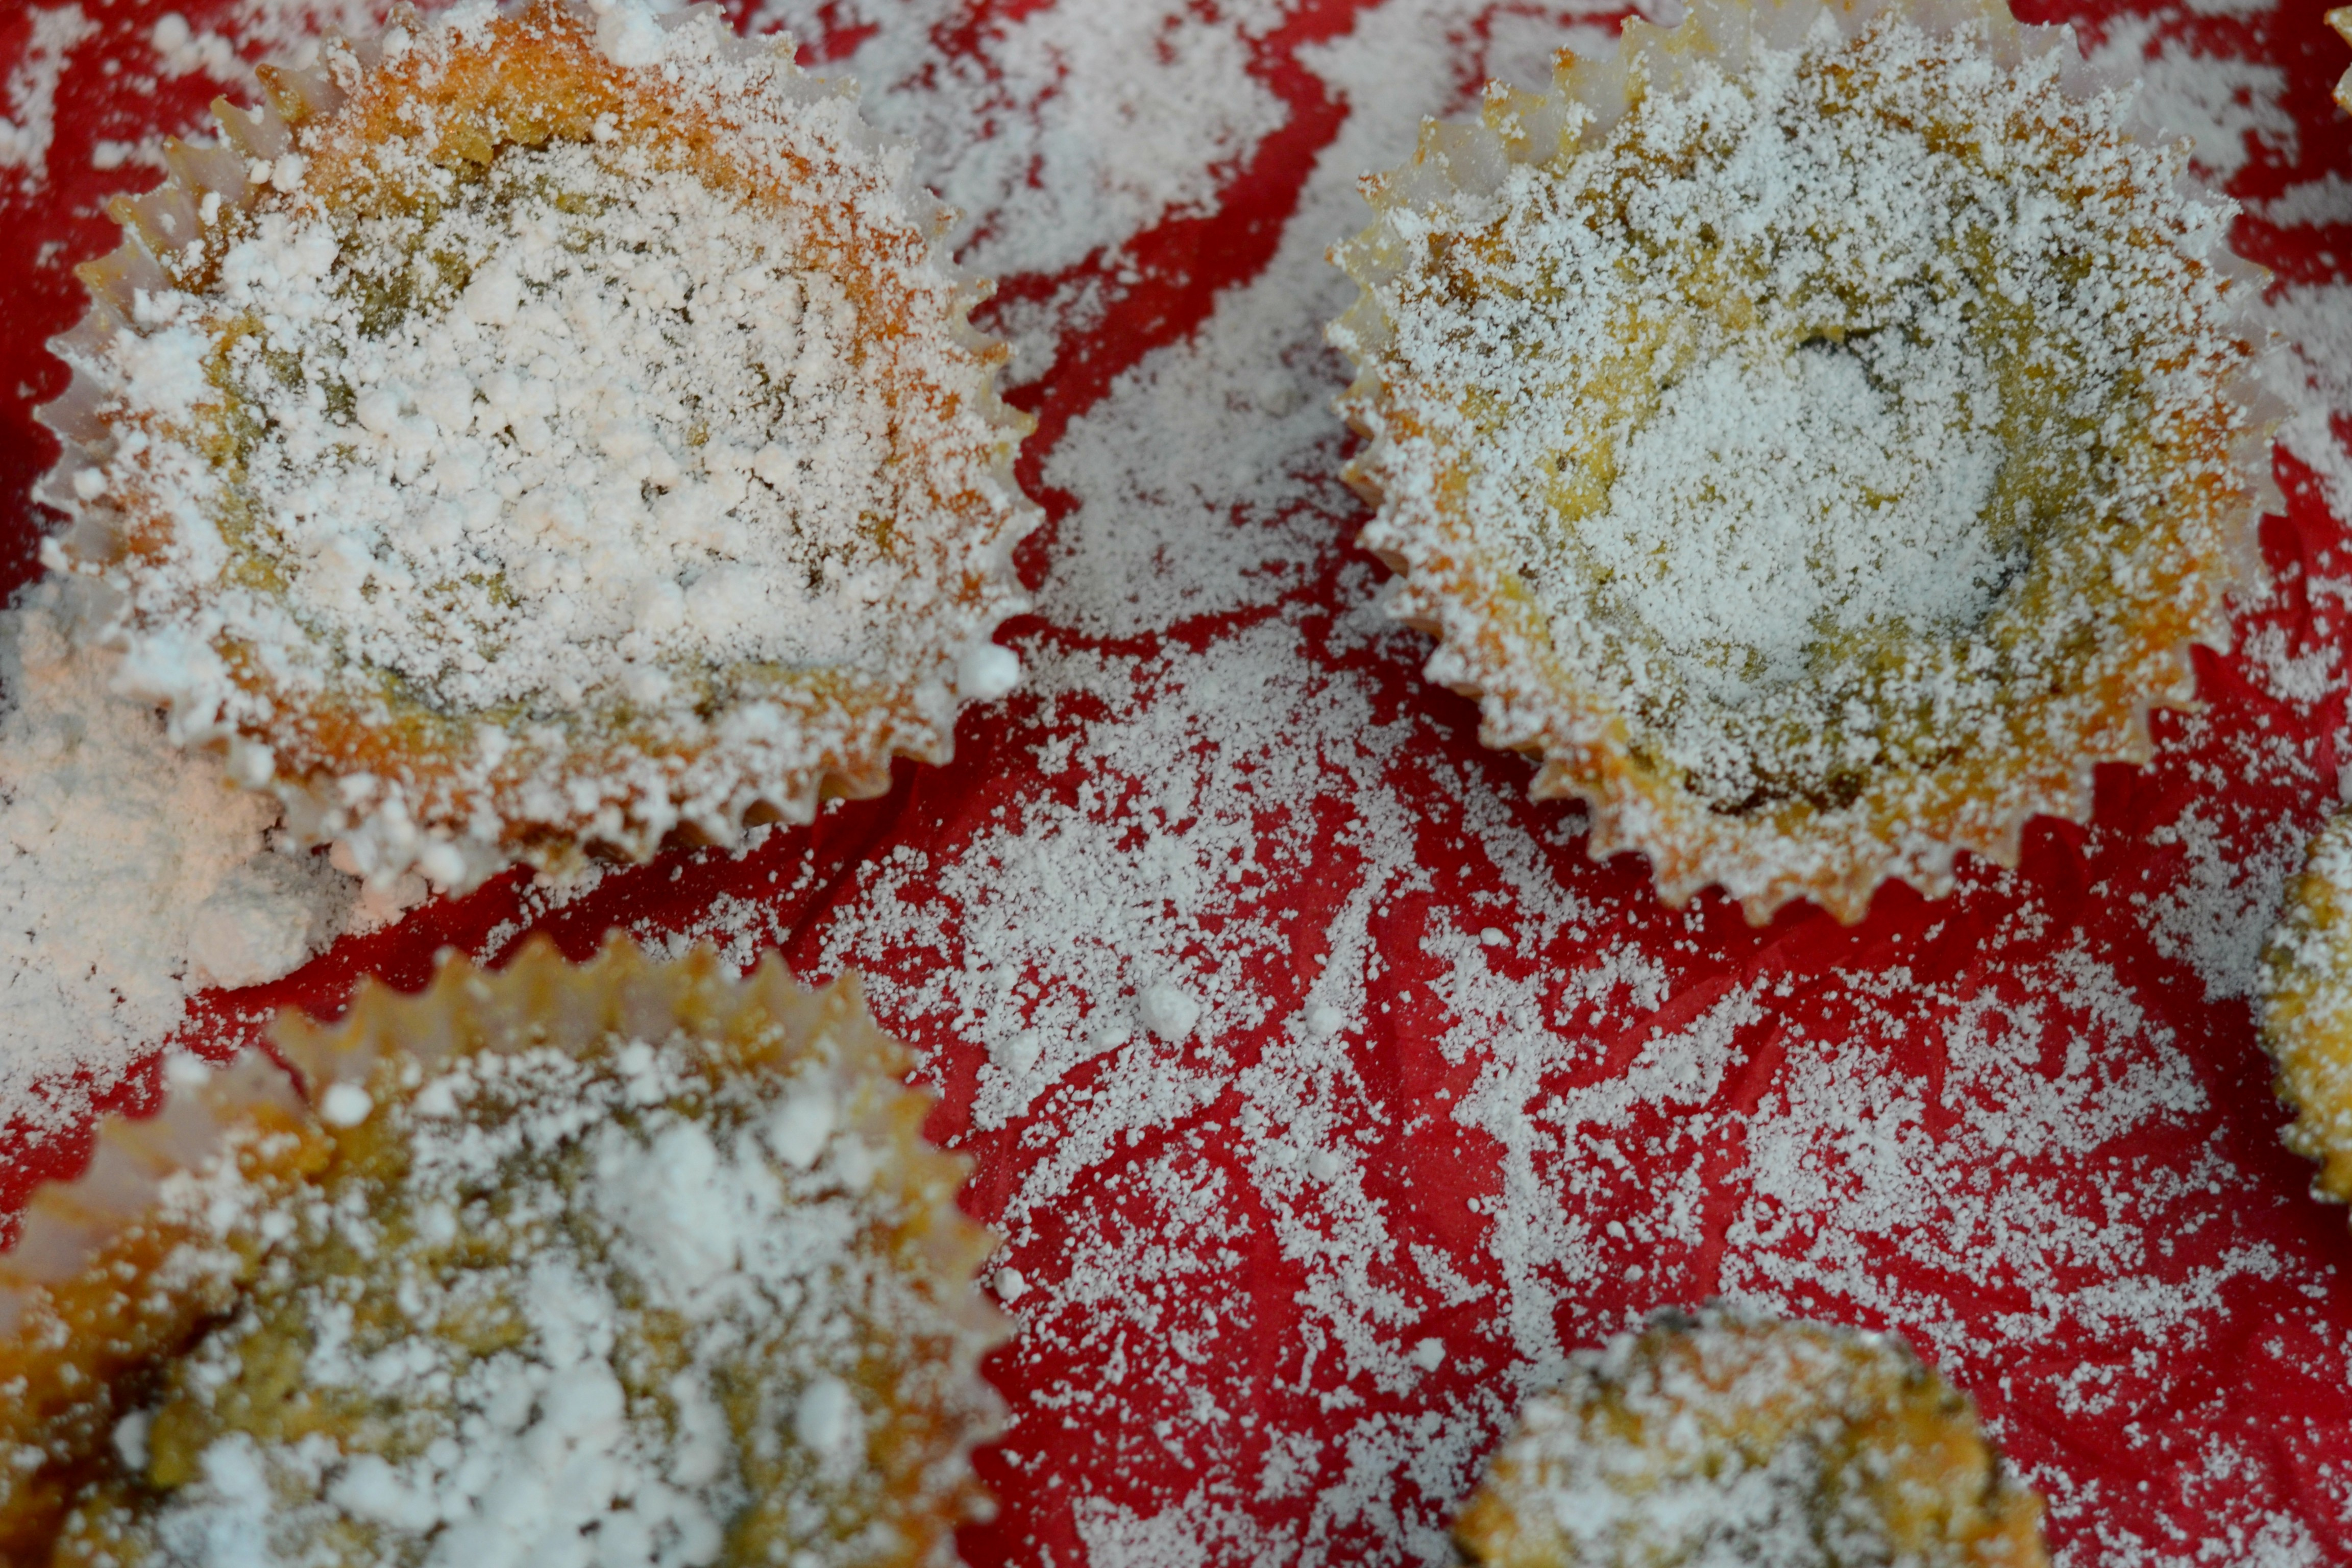 overhead view of miniature crack pies sprinkled with powdered sugar